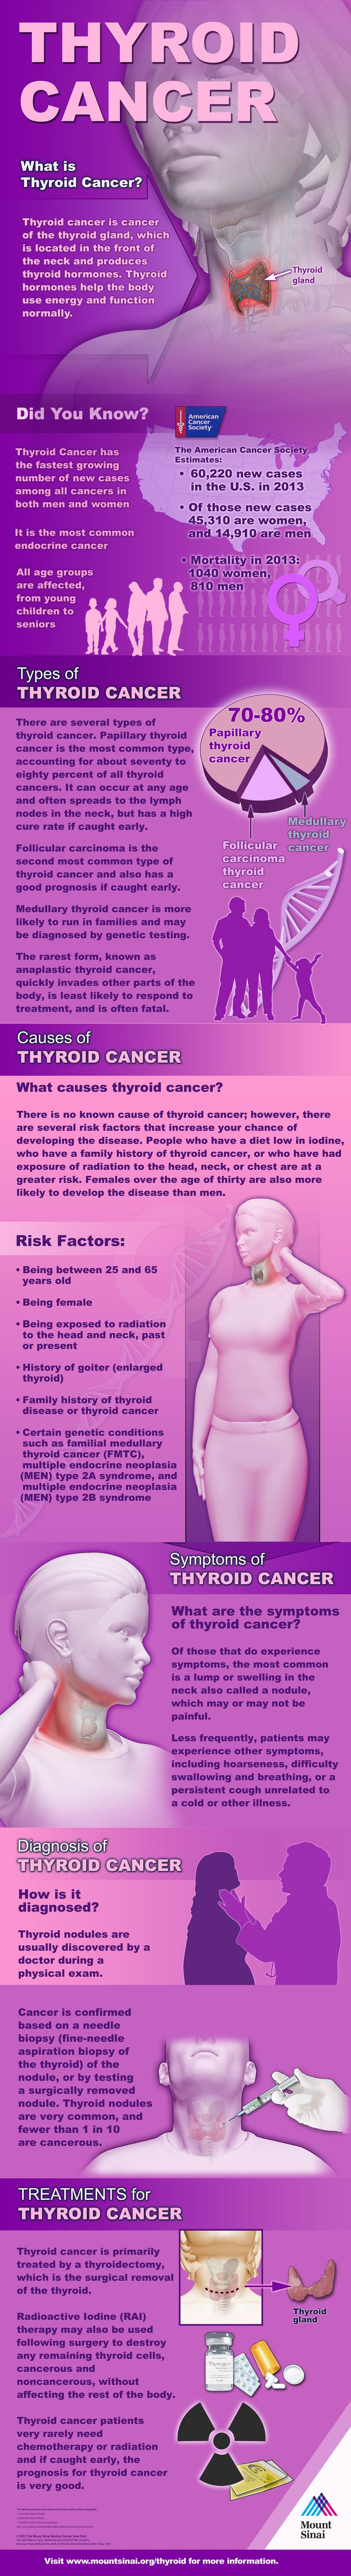 Learn more about thyroid cancer